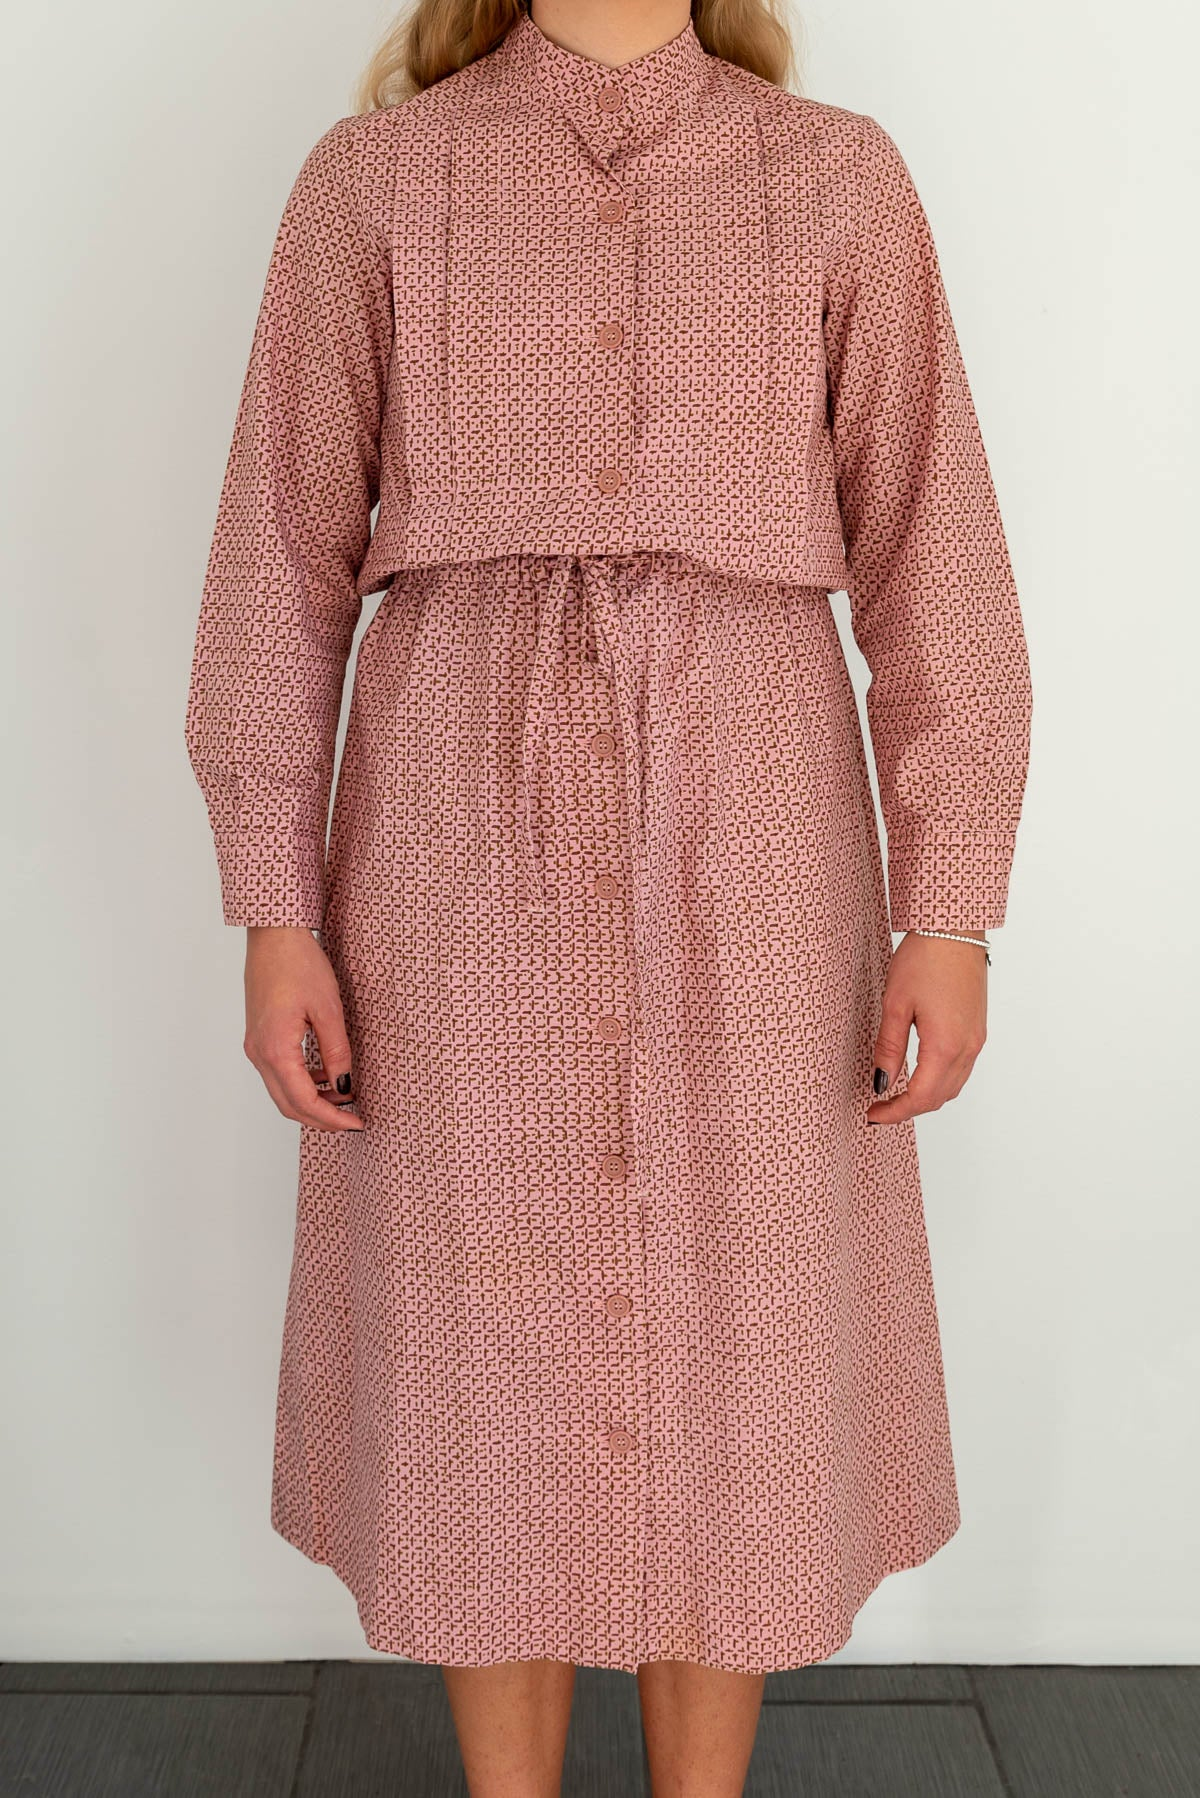 Marimekko pink vintage dress, medium | Finnish Design | Hyvä Helsinki